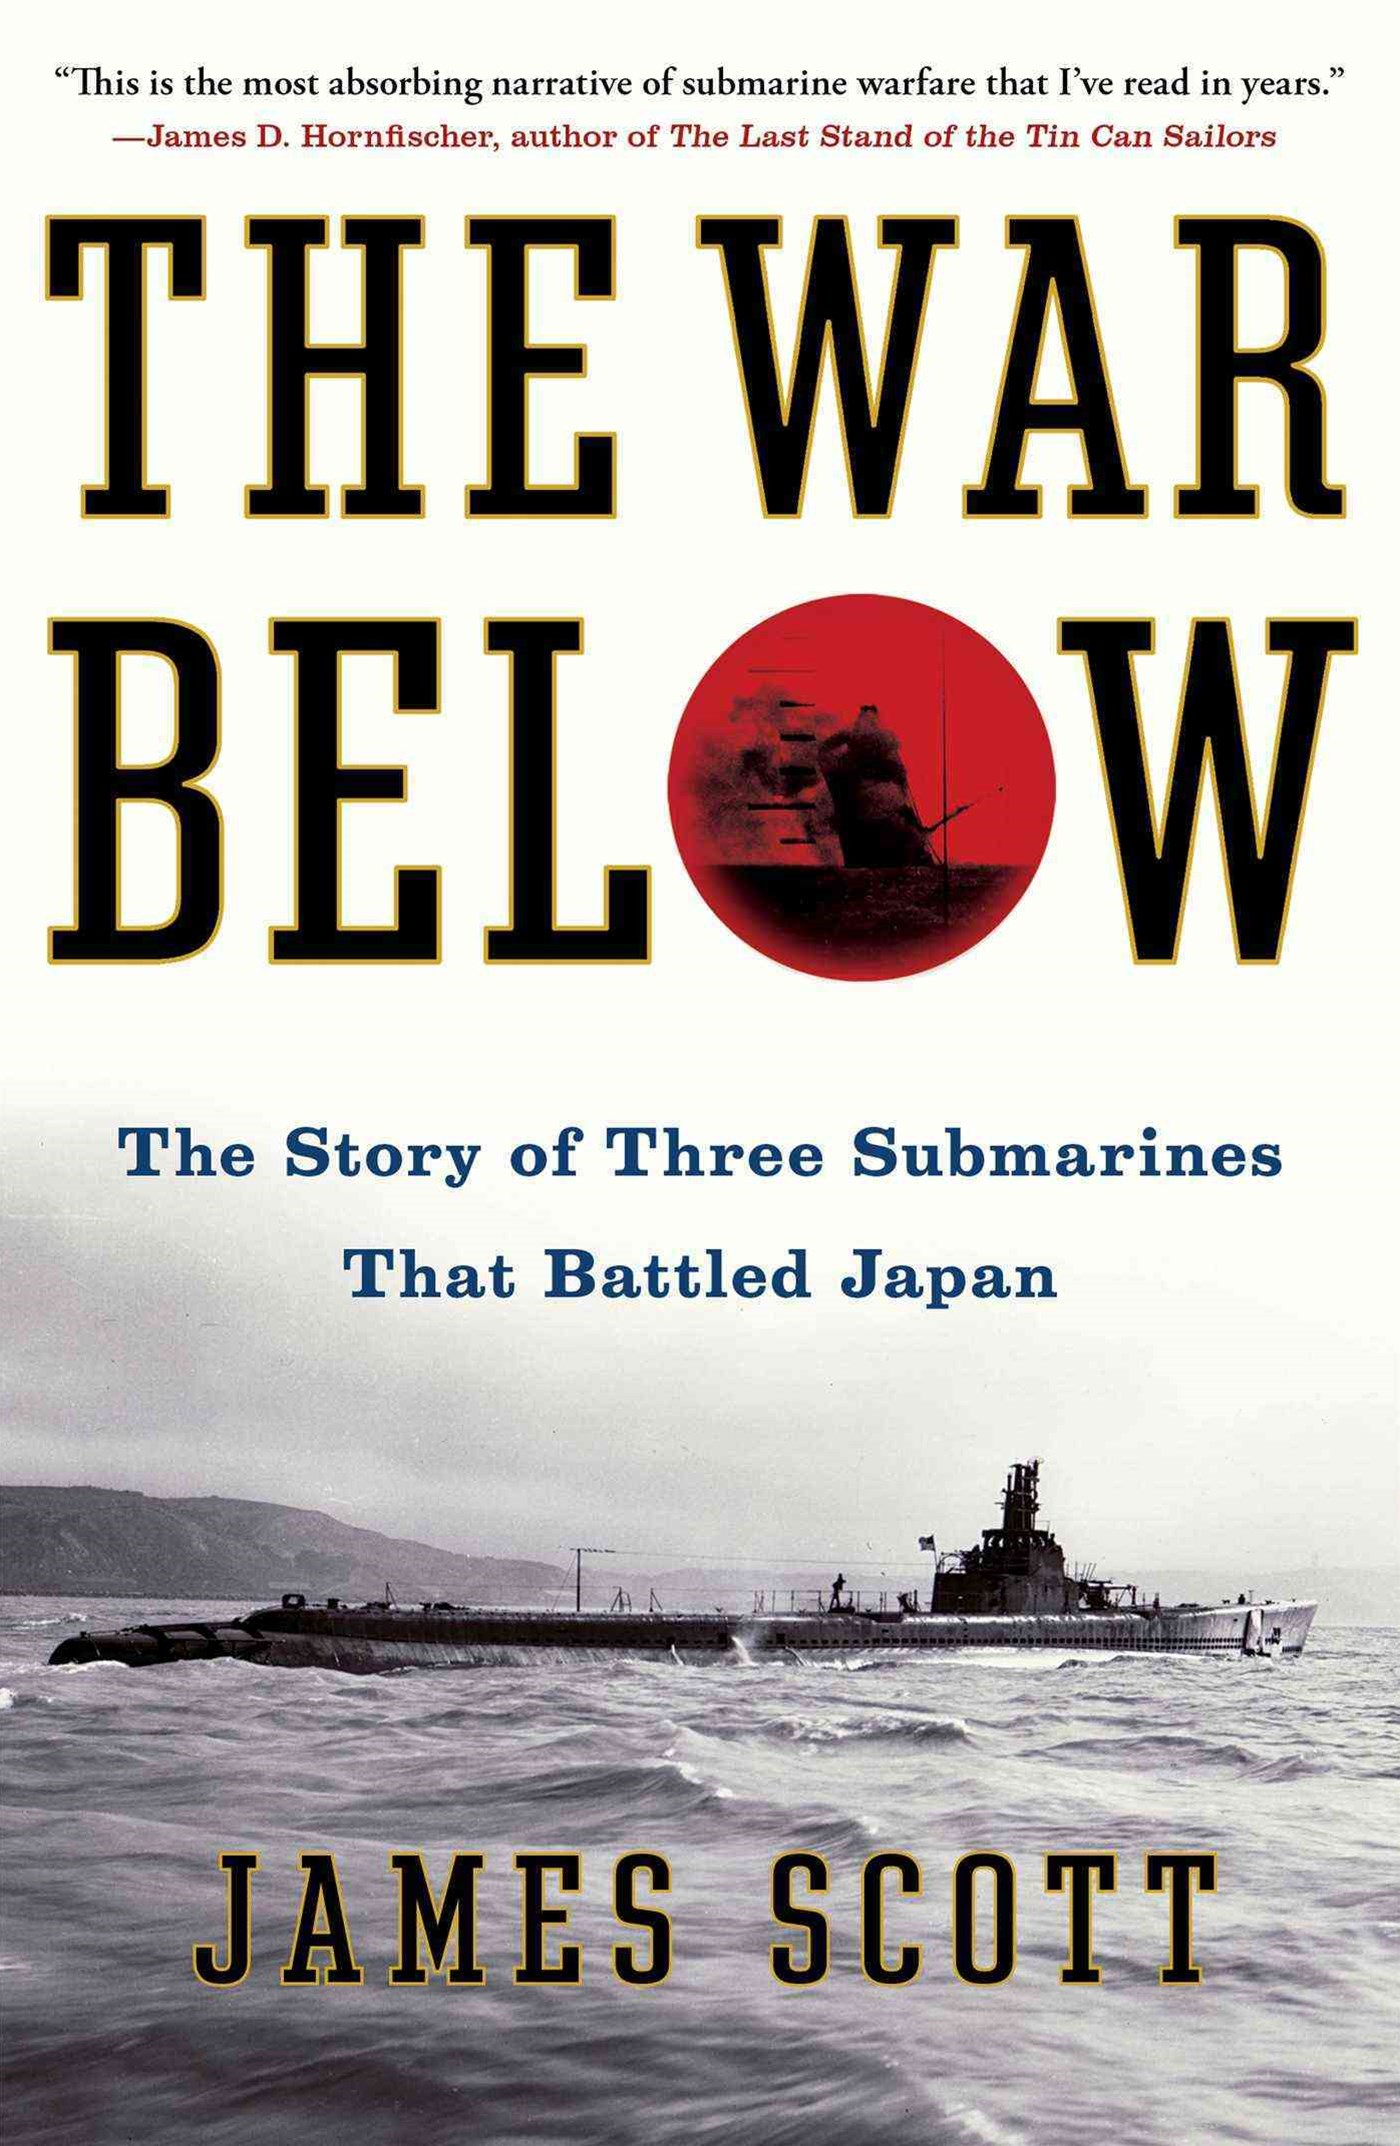 War Below: The Story of Three Submarines That Battled Japan